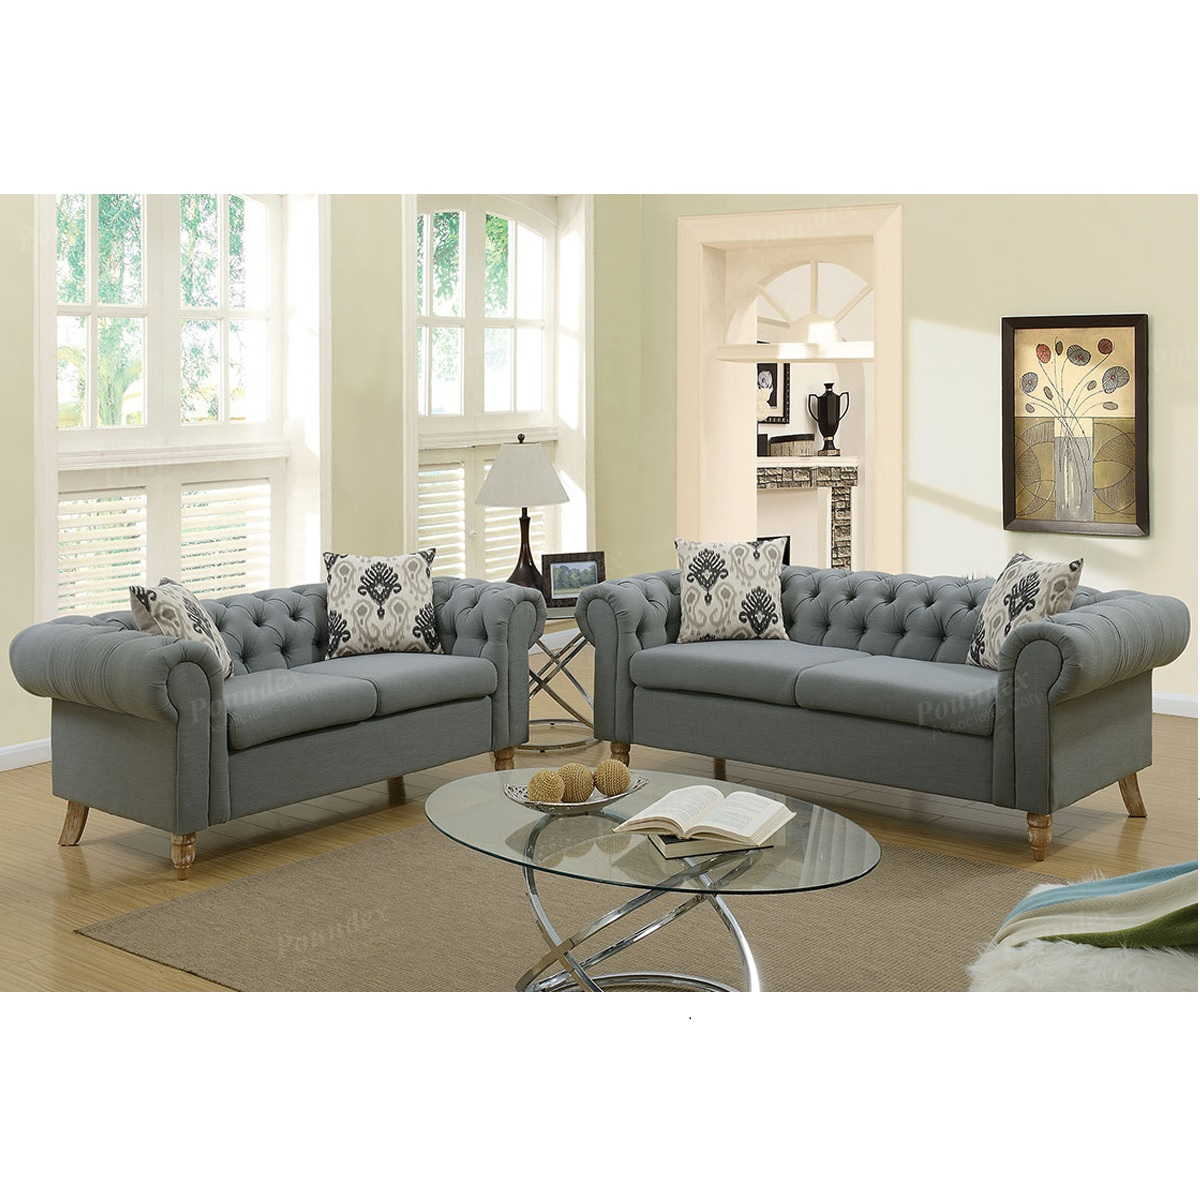 Advanced Plush Polyfiber Scroll Arm Tufted Button Chesterfield Style Sofa, Ash Black